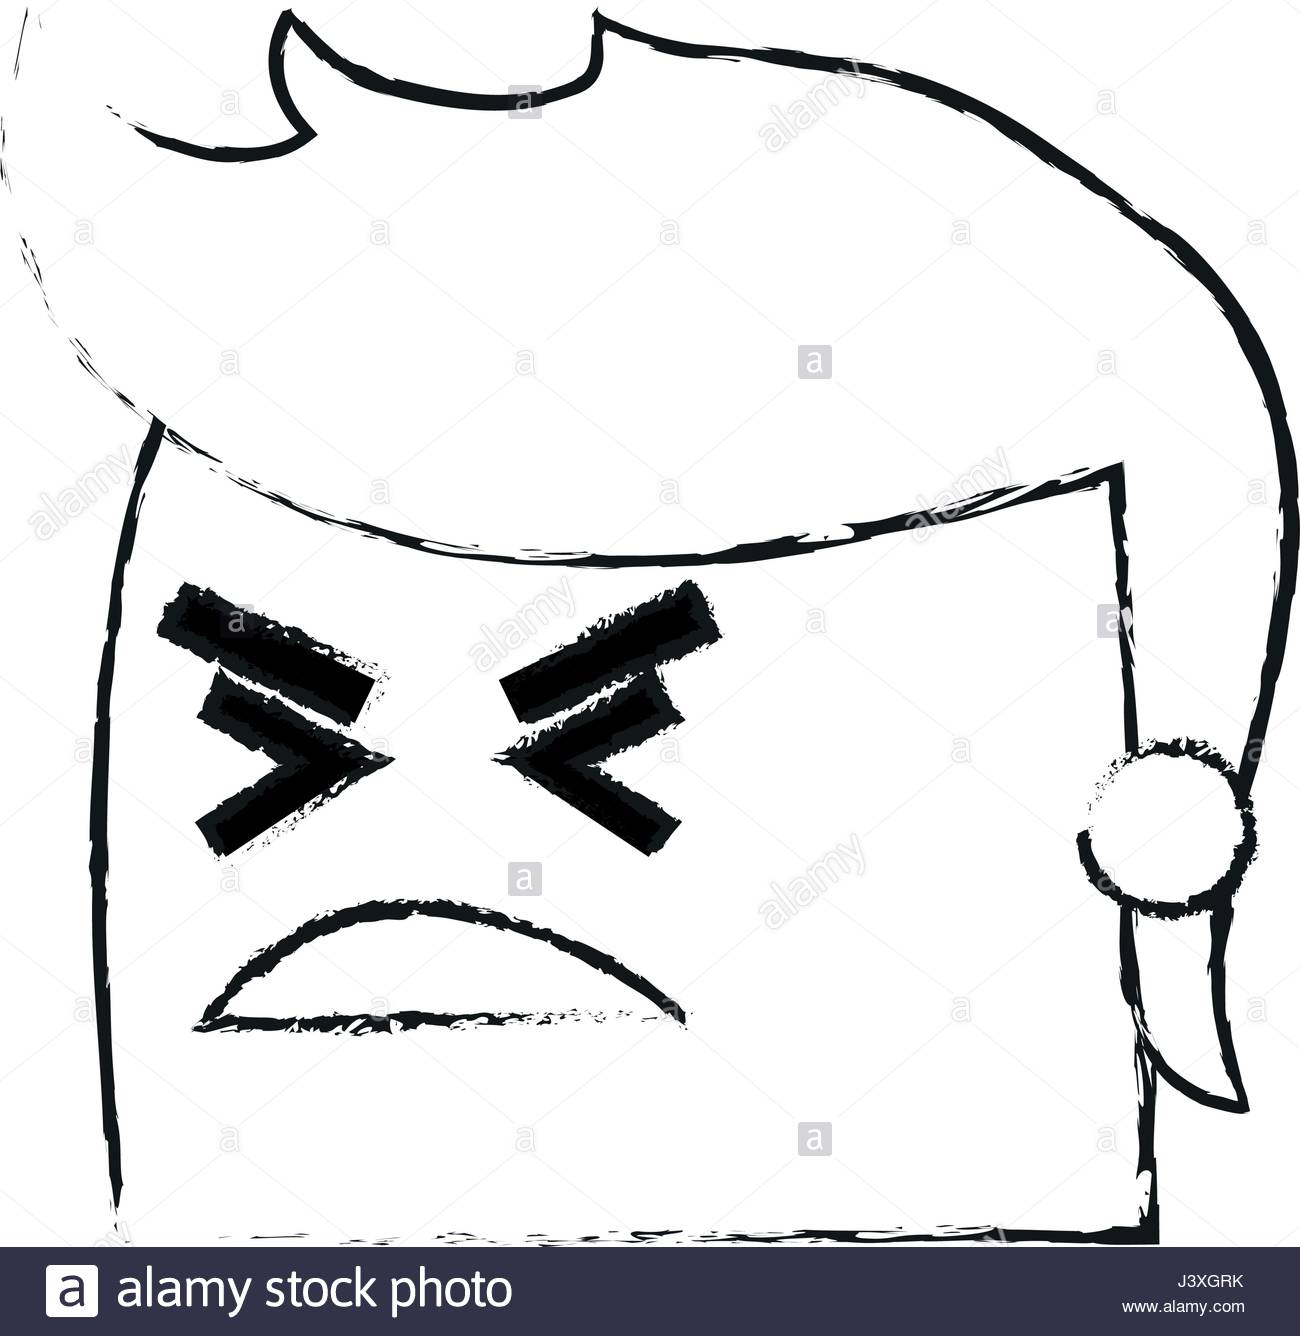 1300x1336 Blurred Silhouette Image Side View Face Cartoon Man With Angry